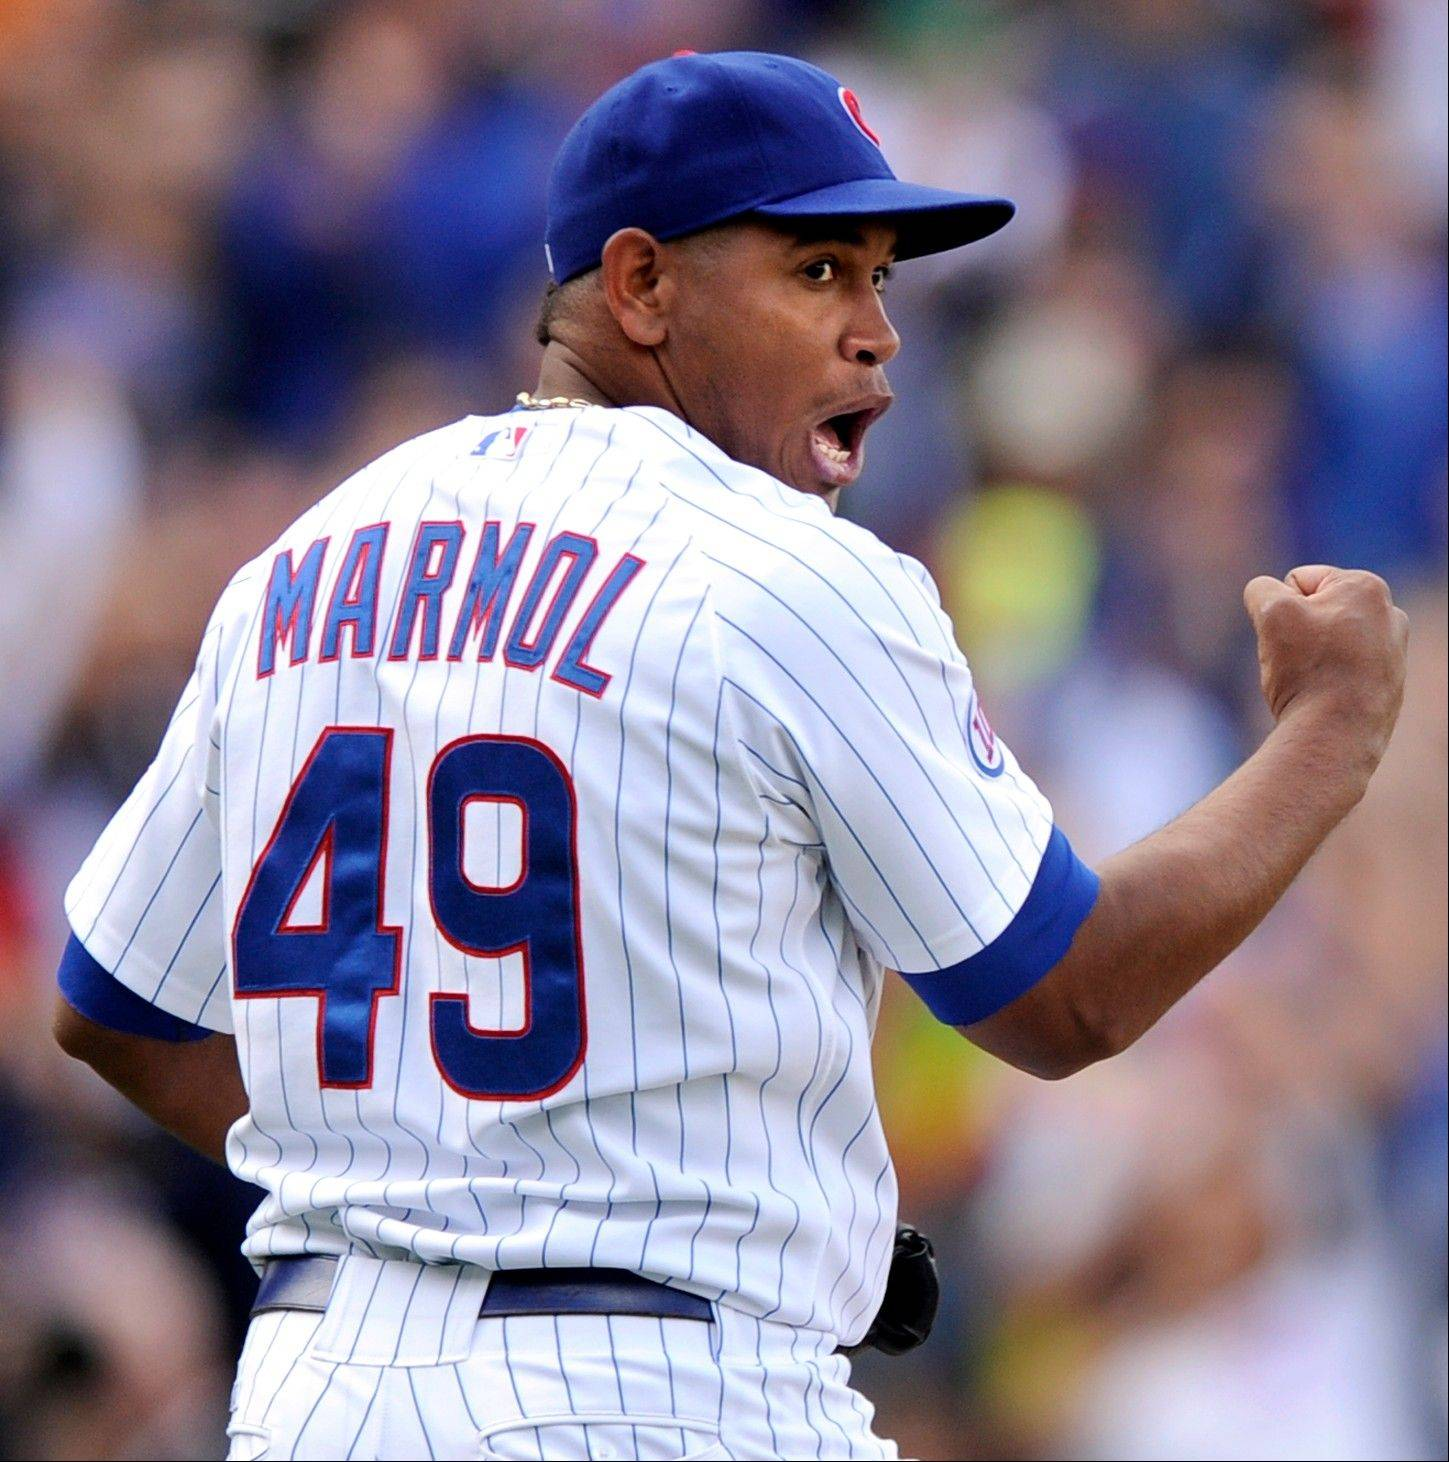 Cubs' advice to Marmol: Cut out the cutter